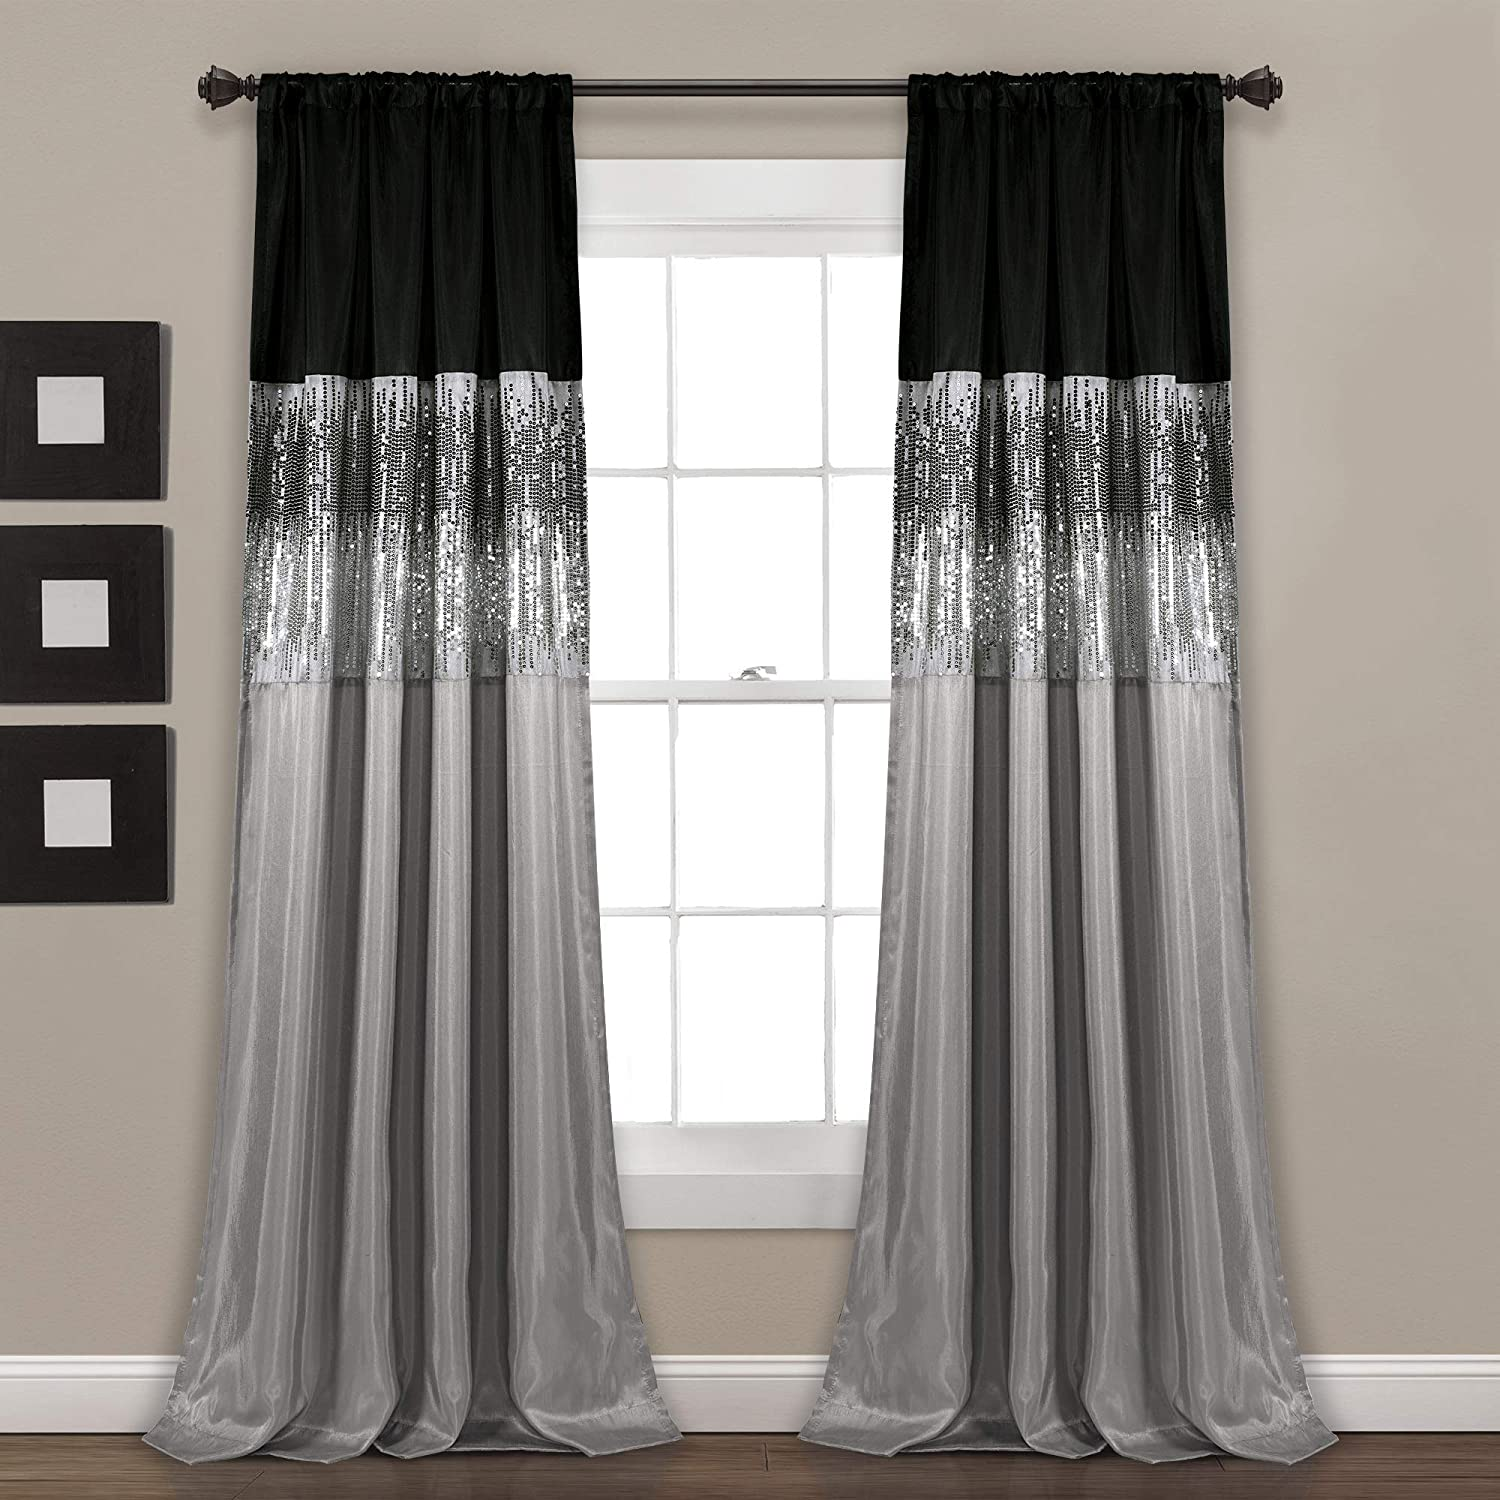 Amazon Com Lush Decor Night Sky Panel For Living Bedroom Dining Room Single Curtain 84 X 42 Grey And Black Home Kitchen